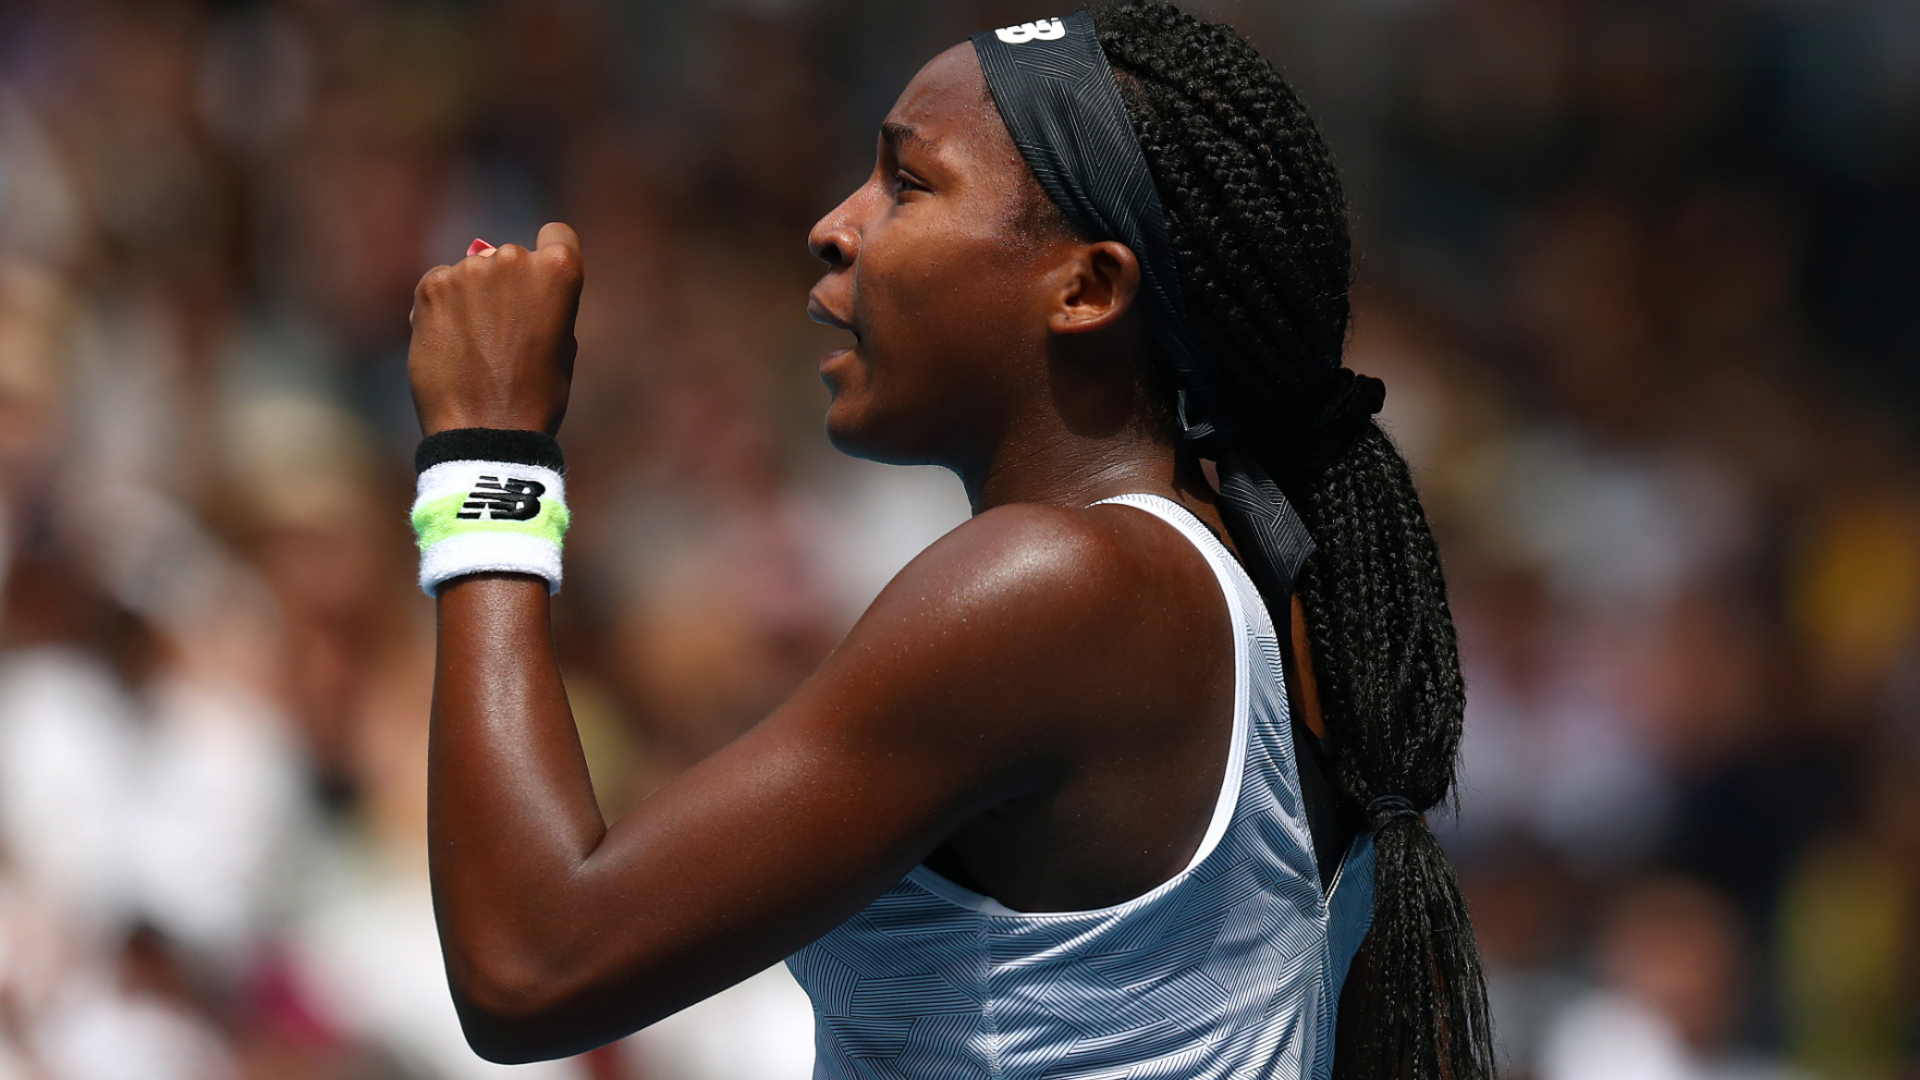 Coco Gauff 'was more mature at 14 than some players at 25'